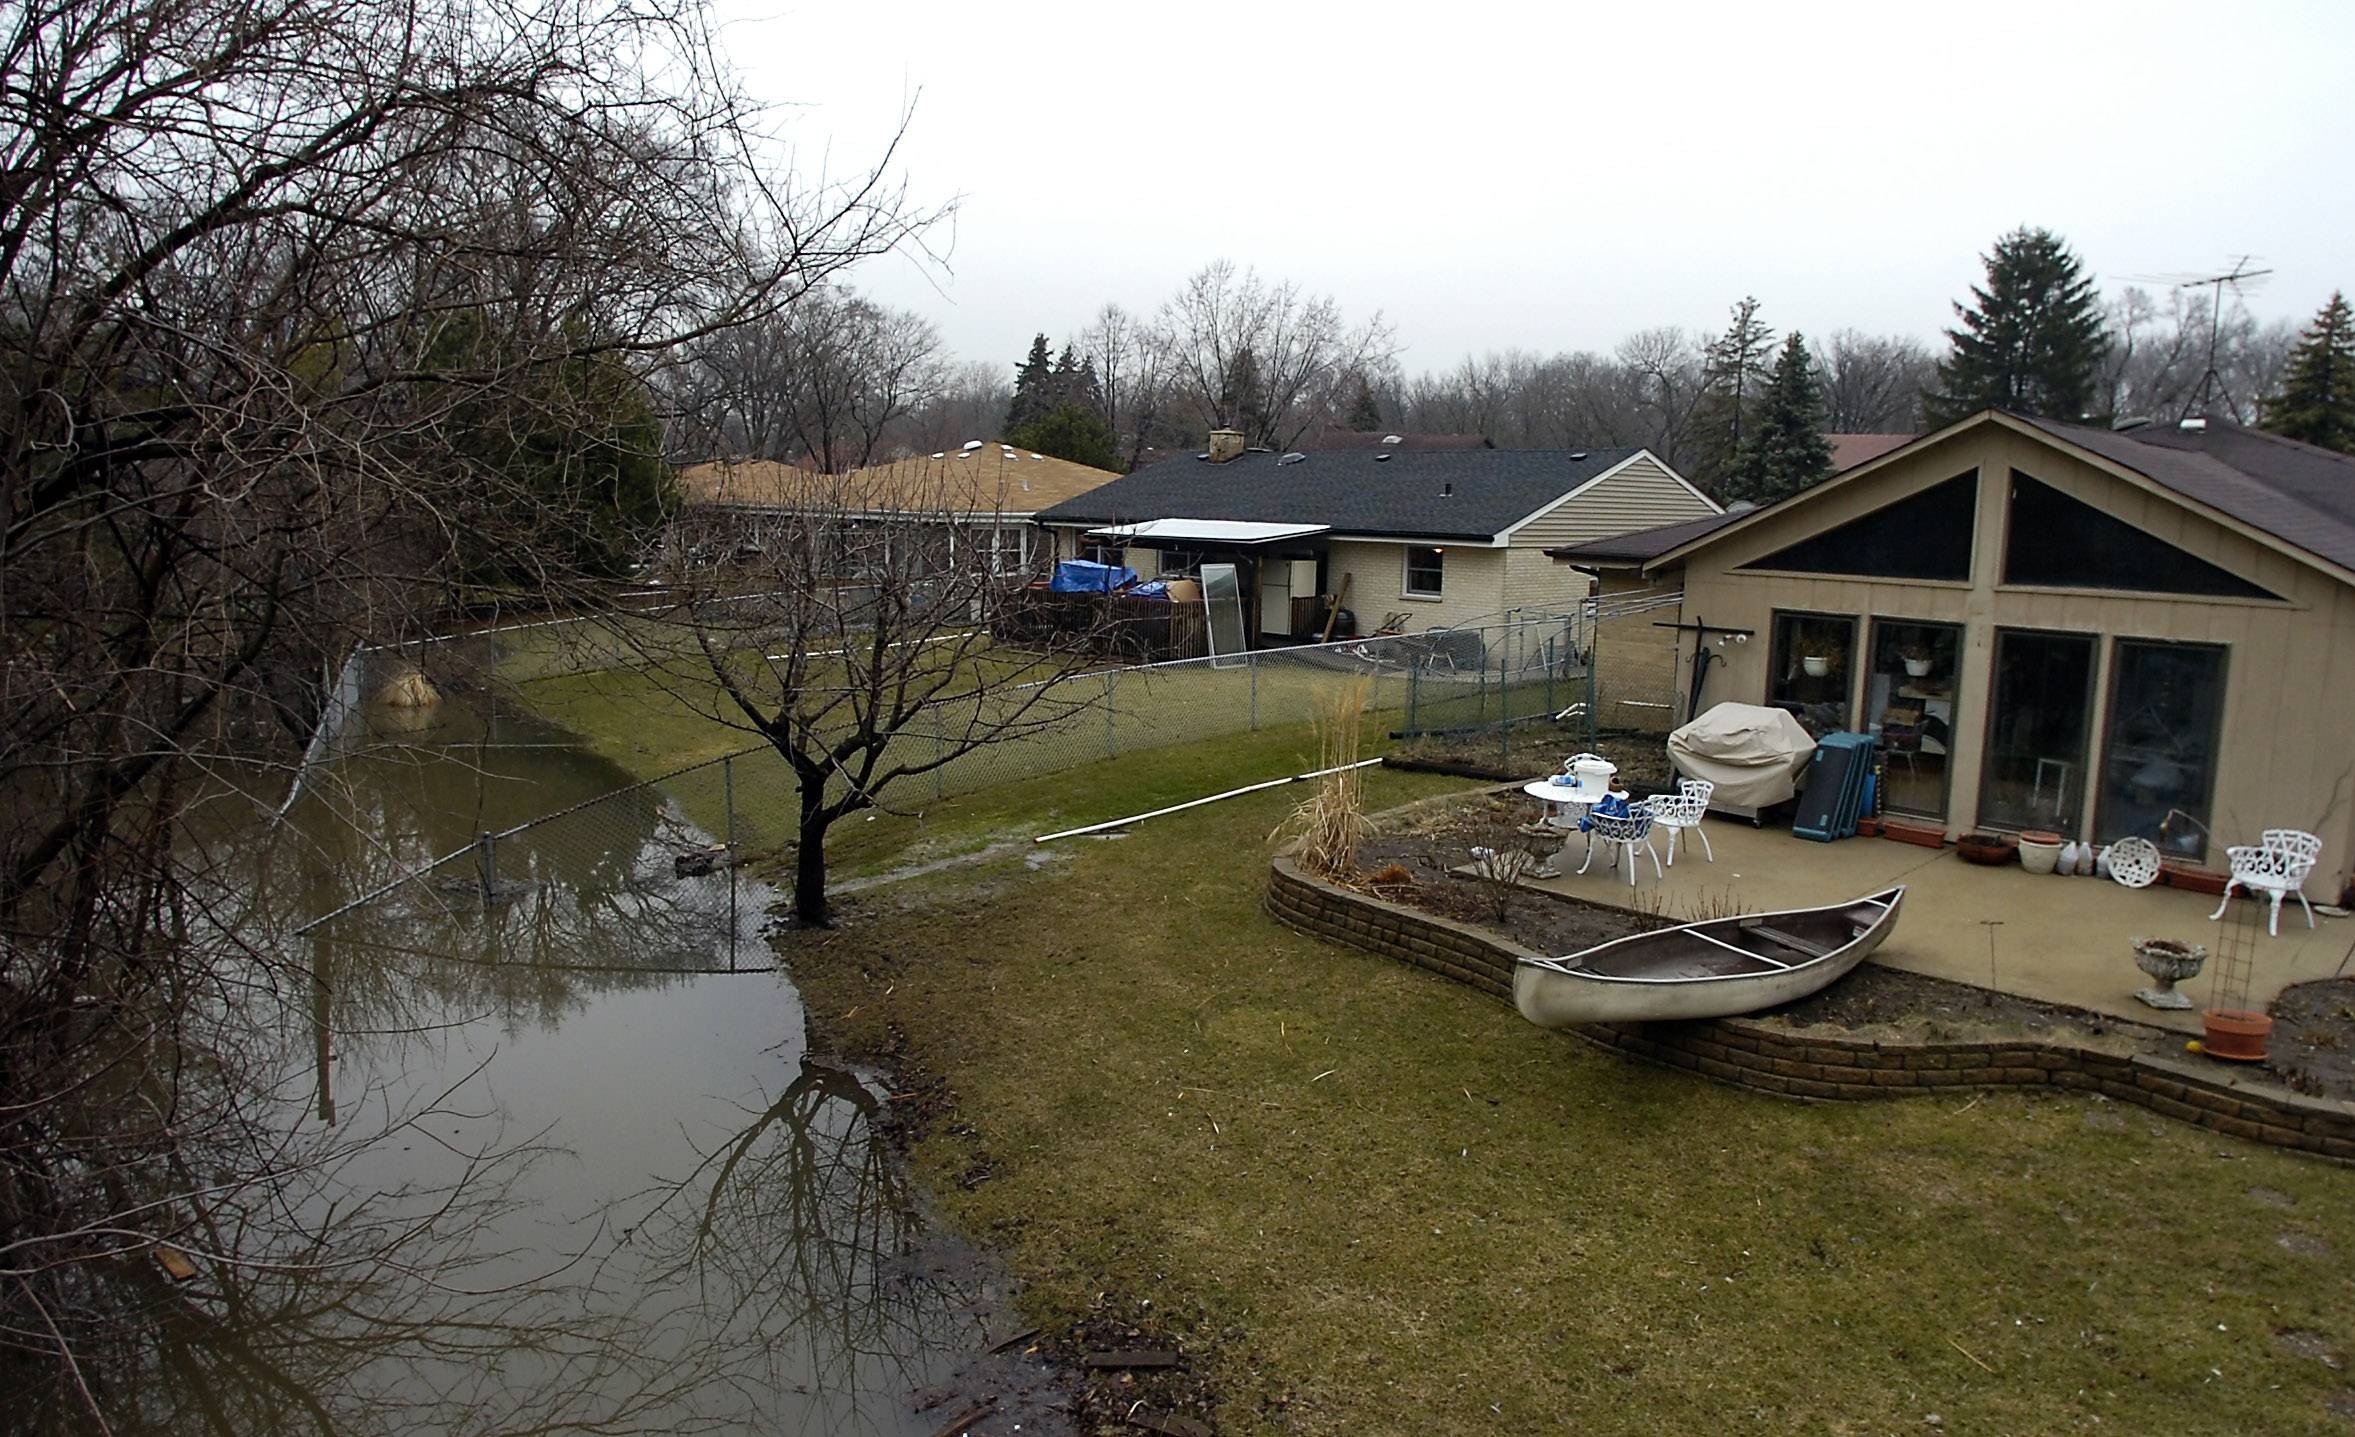 A total of 21 homes that regularly experience flooding in Des Plaines, including some on Big Bend Drive, are eligible to be bought out as part of a Federal Emergency Management Agency program.